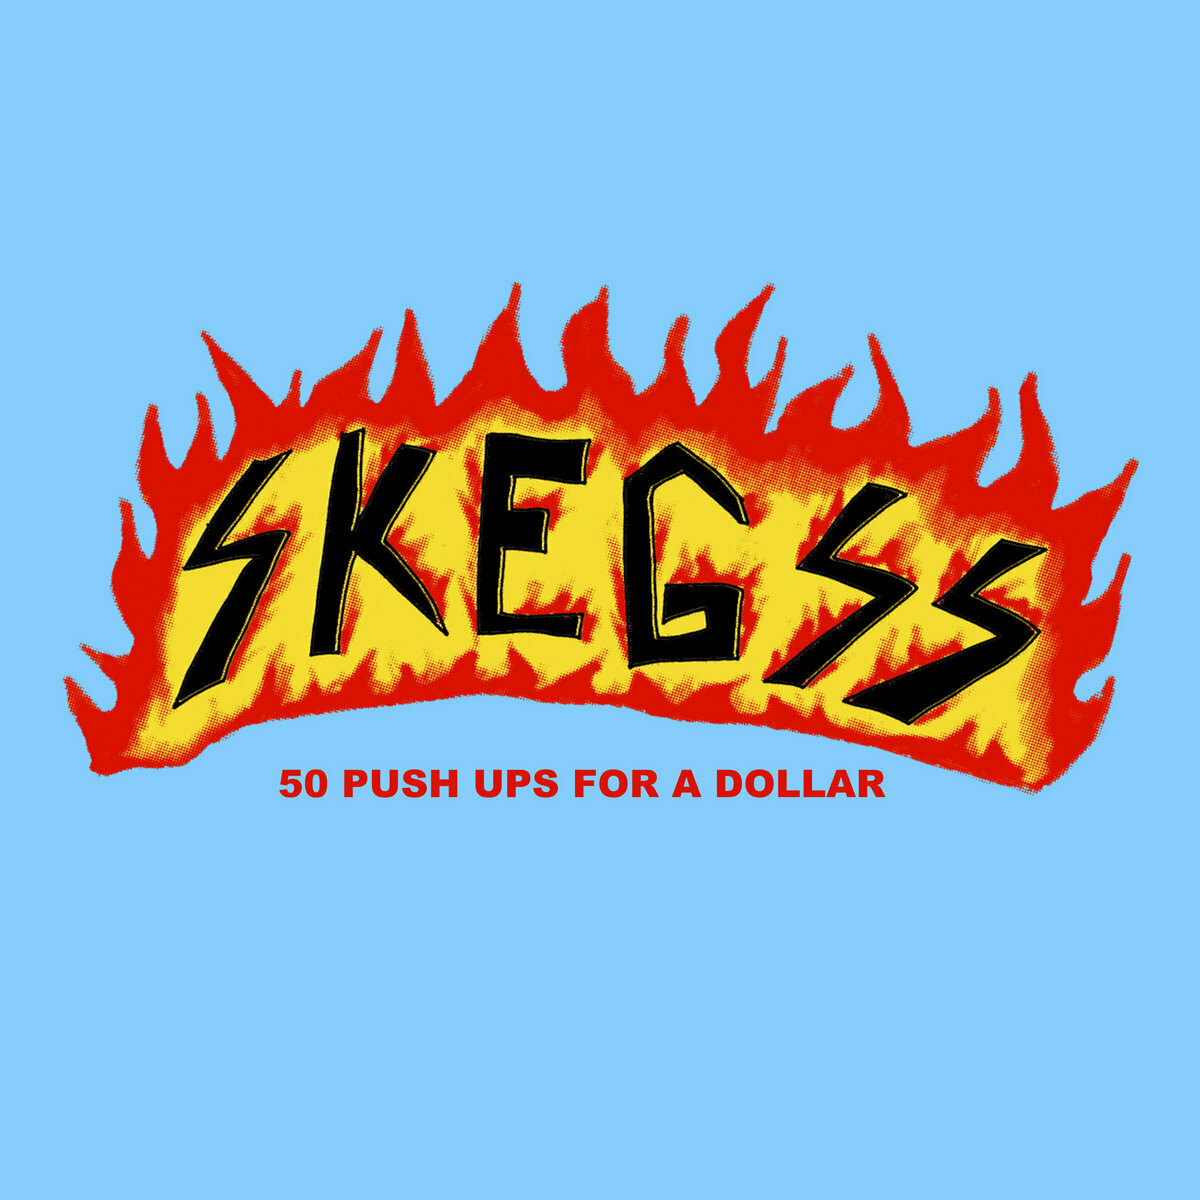 Skegss - 50 Push Ups For A Dollar [LP]